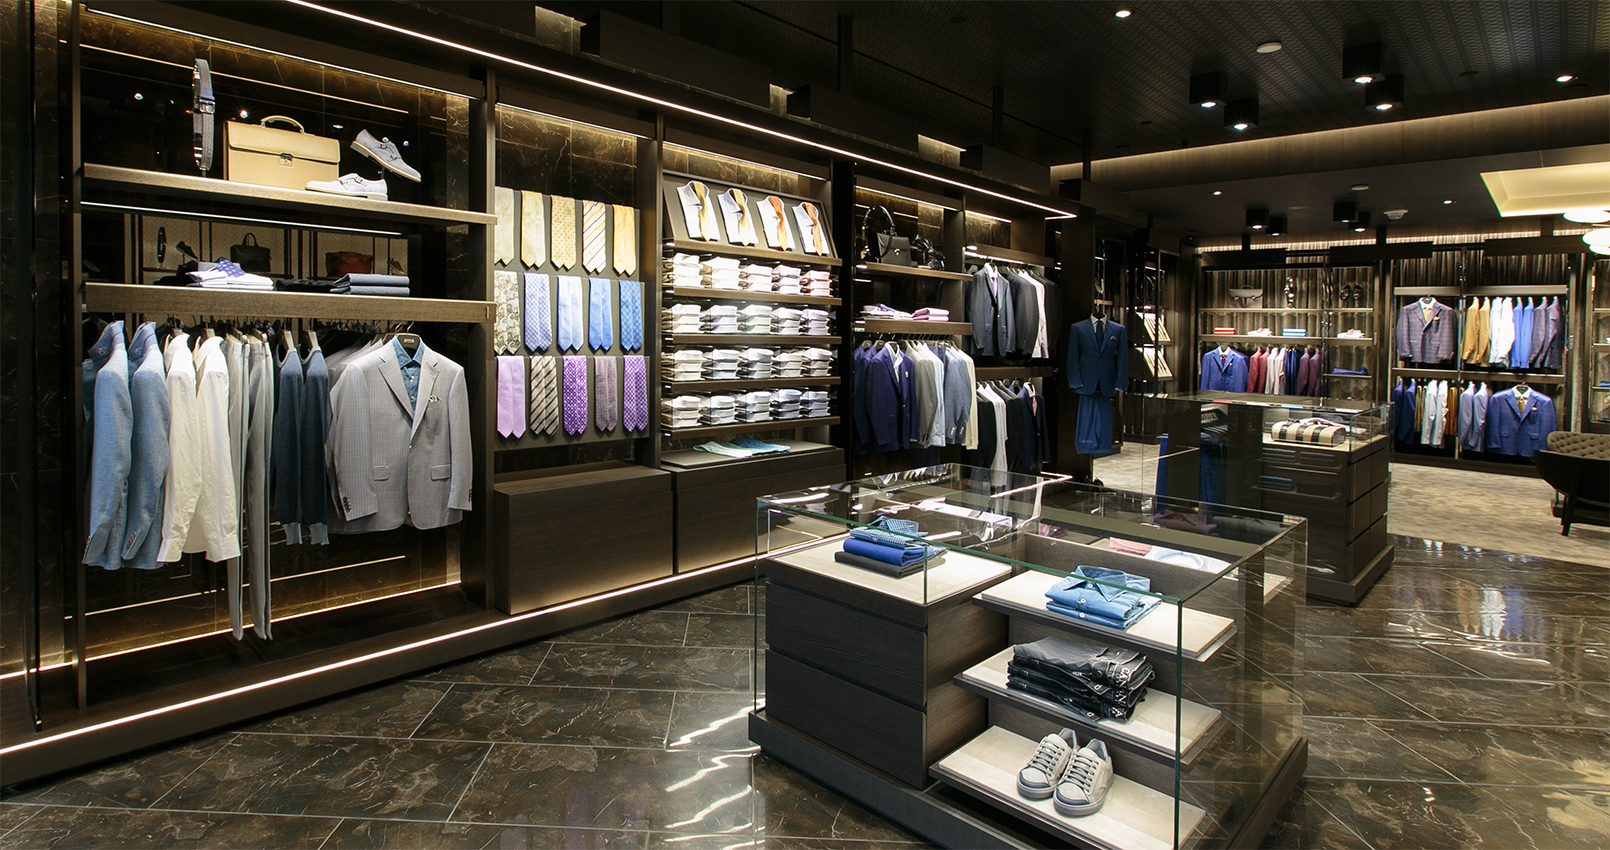 Attrayant Canali Opens A New Boutique At NorthPark In Dallas, Texas | Canali.com